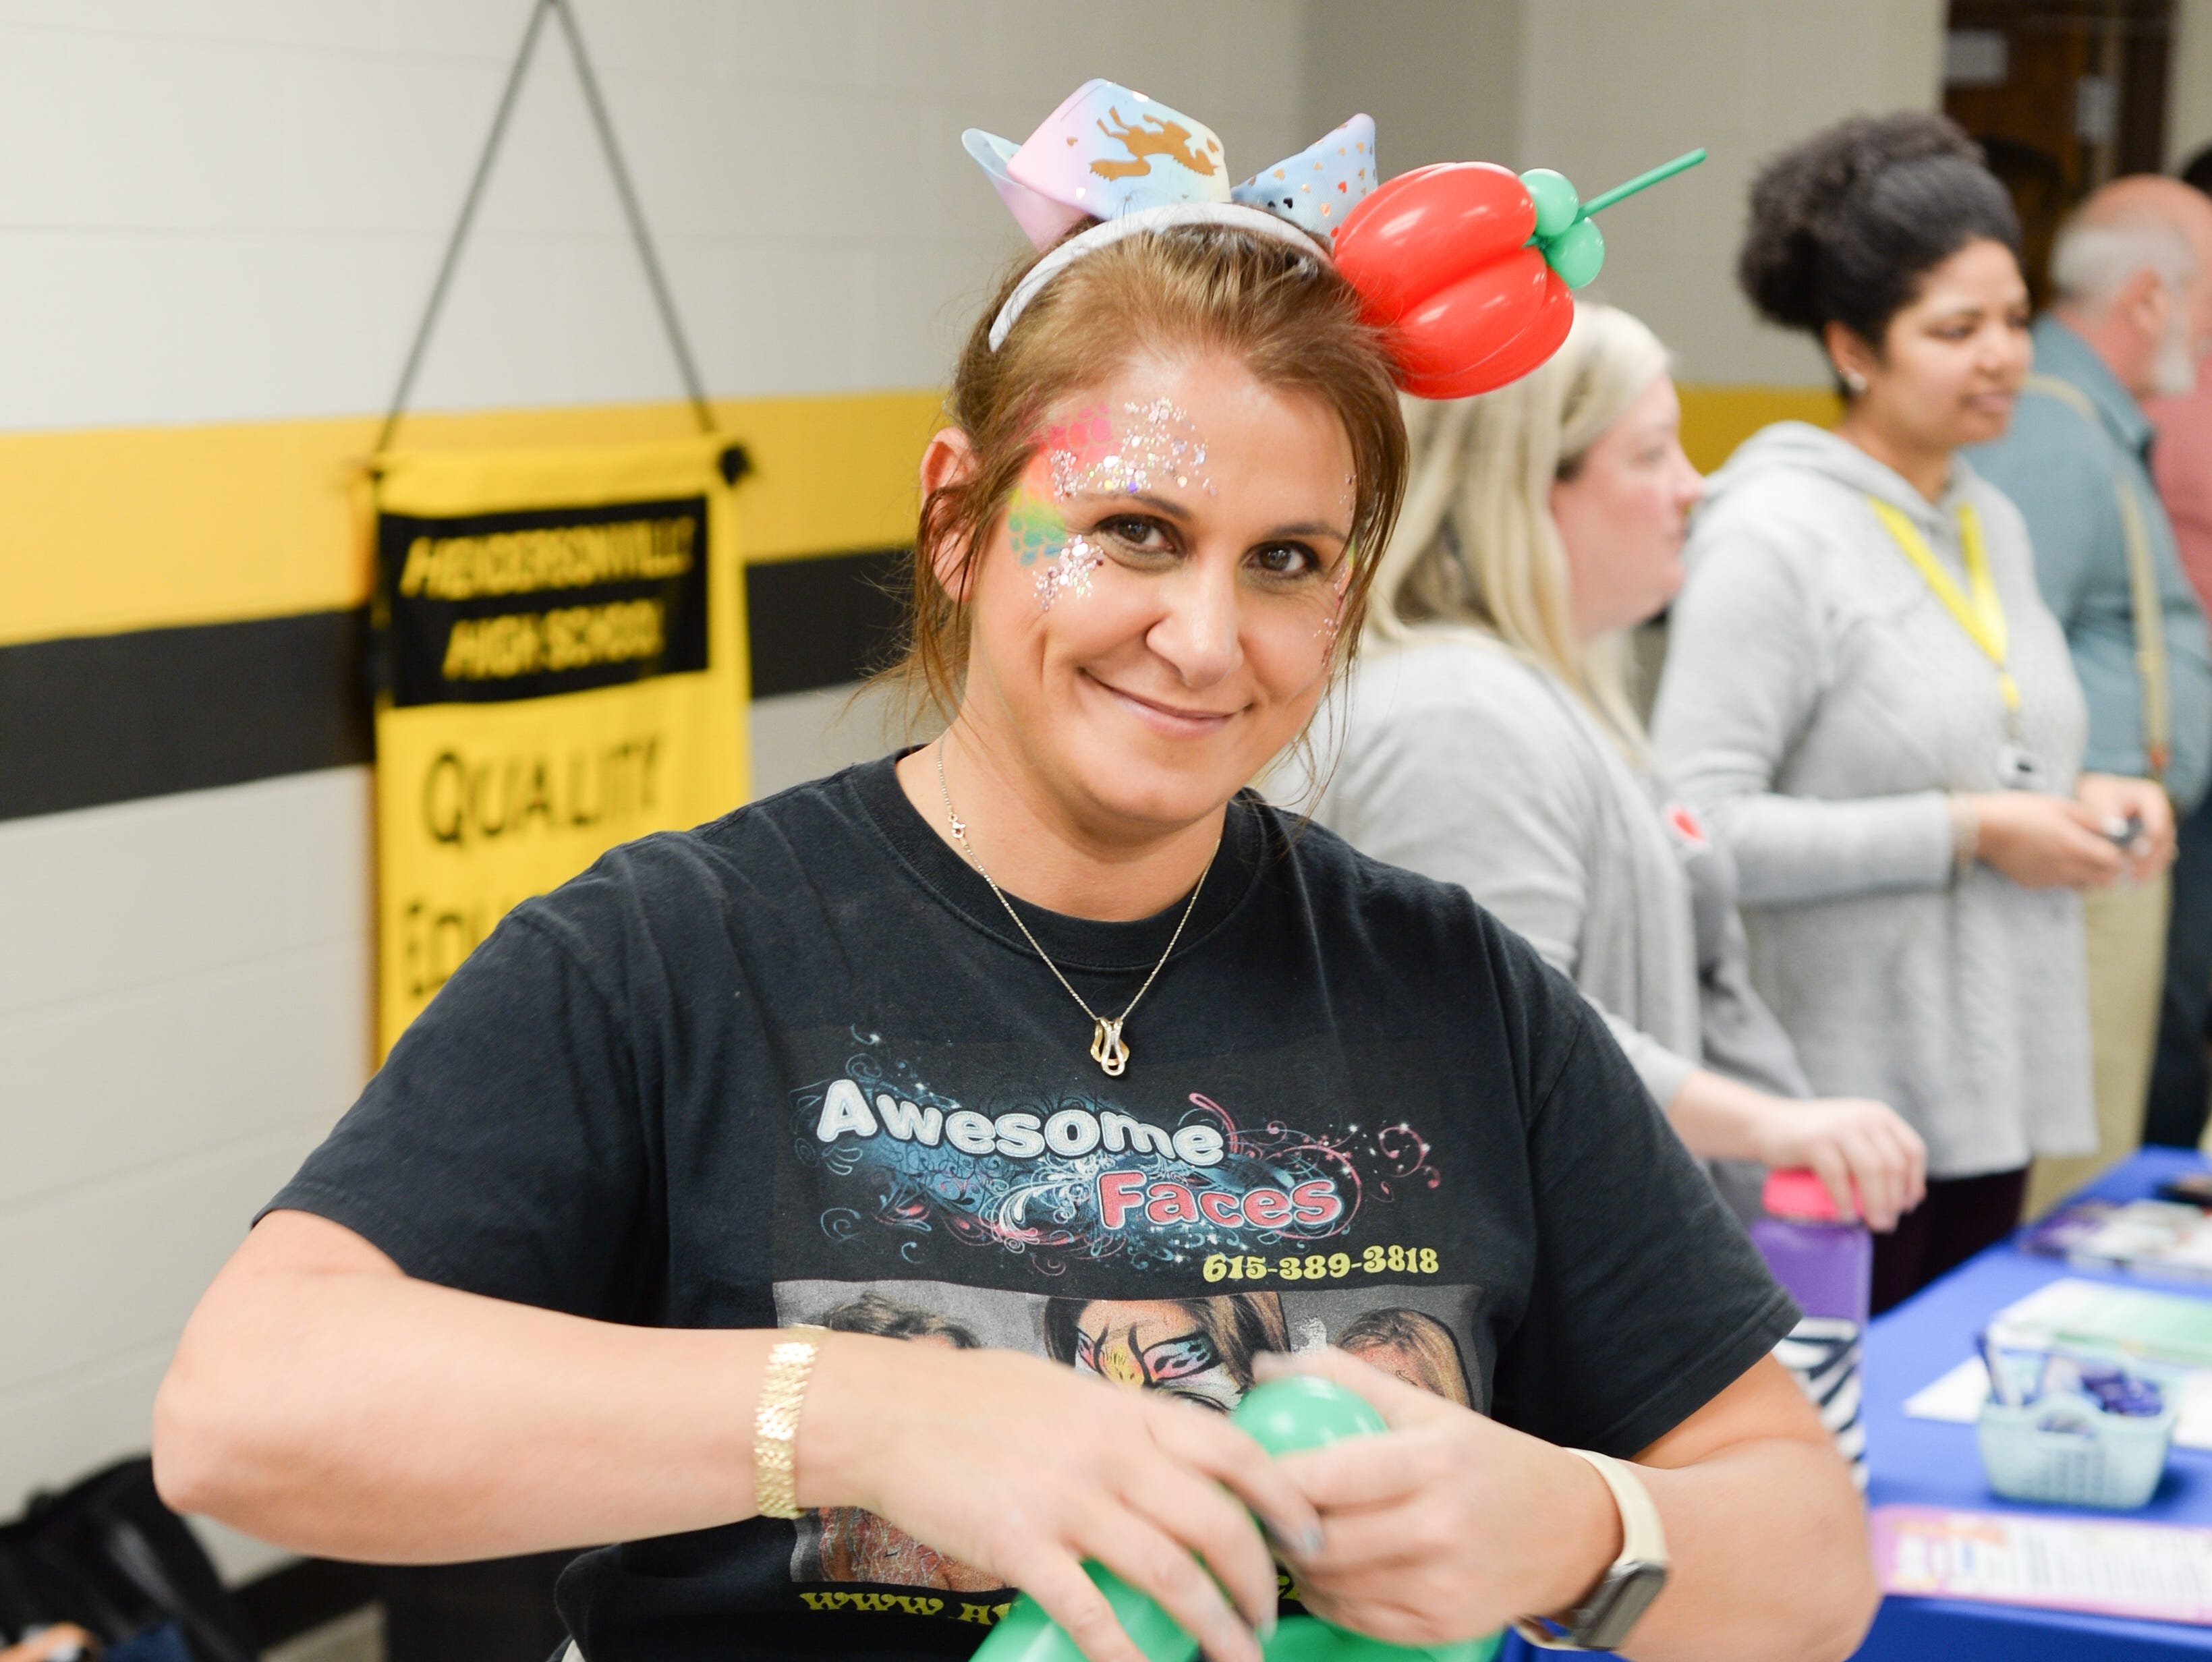 Amanda from Awesome Faces adds color to the Mid TN Babies and Beyond Fest and Be Healthy Hendersonville Expo Presented by Hendersonville Area Chamber of Commerce at Hendersonville High School on Saturday, March 16.